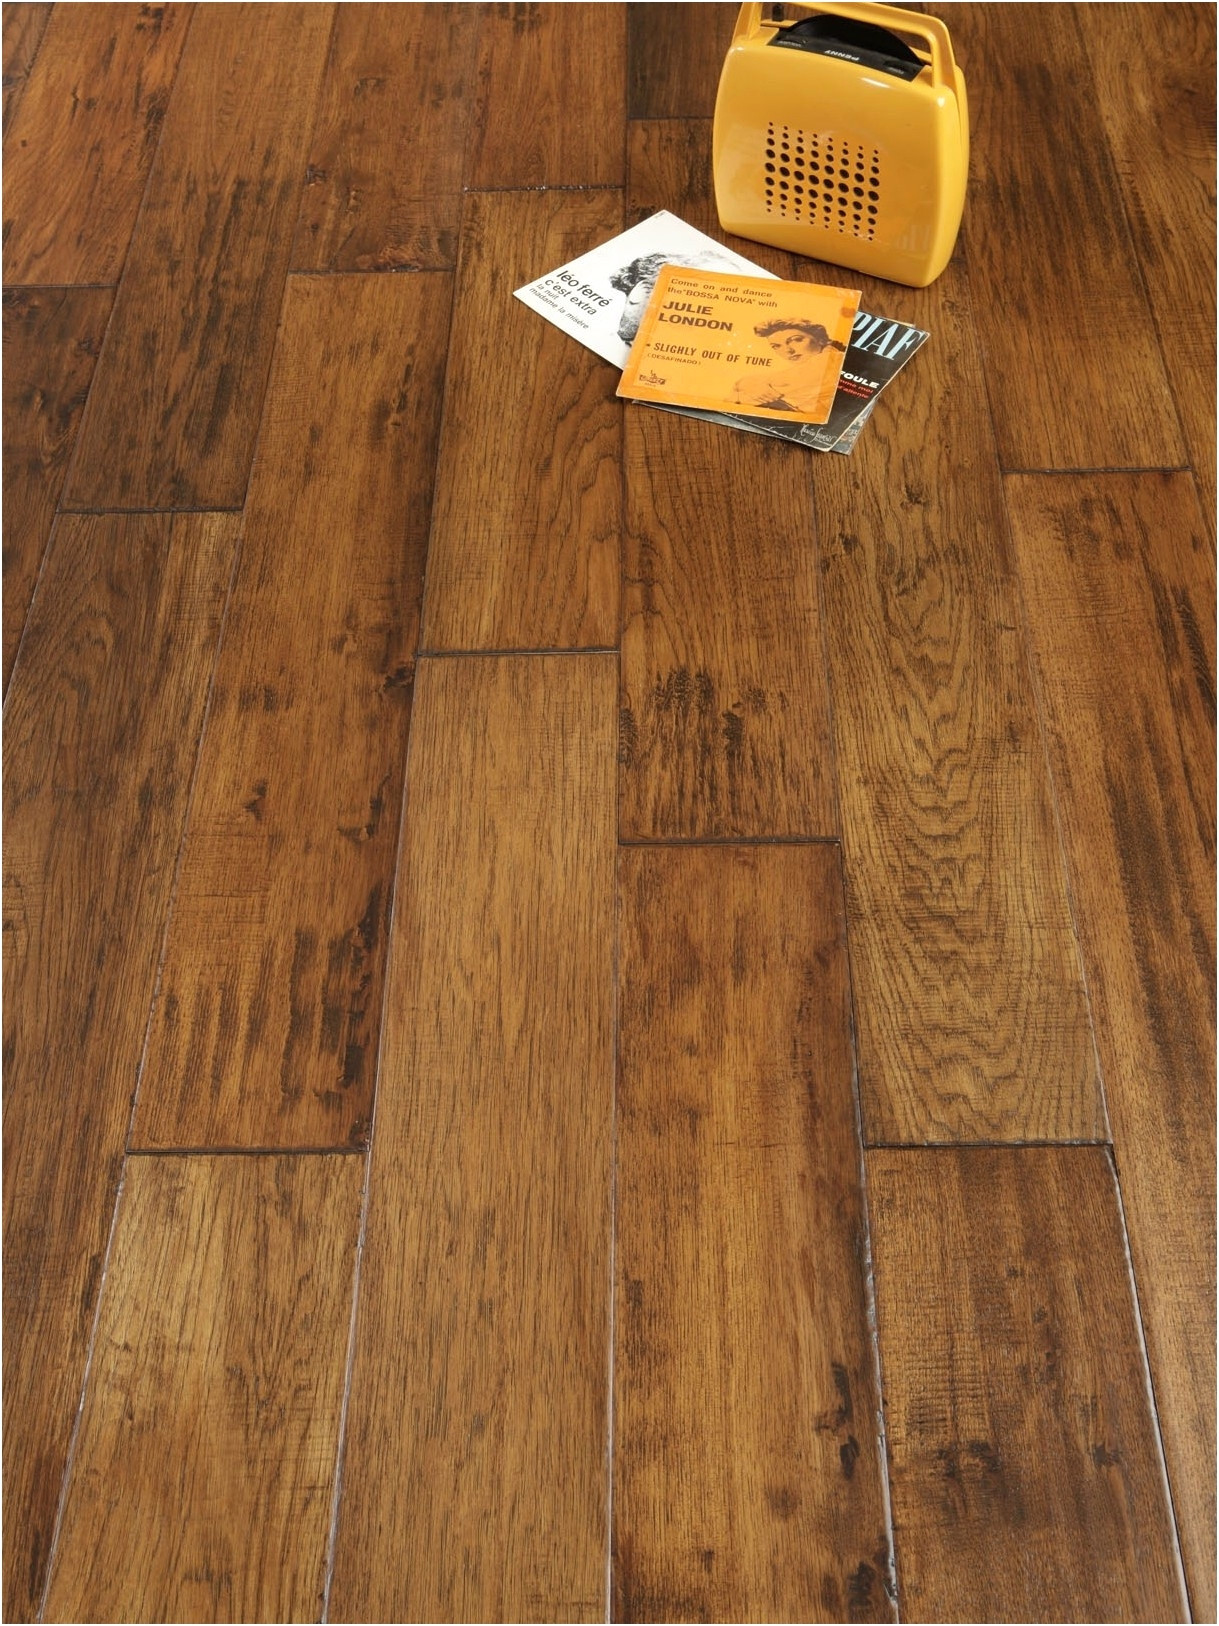 hardwood floor refinishing chicago of menards flooring sale 50 lovely menards vinyl floor tiles pics 50 pertaining to menards flooring sale 50 lovely menards vinyl floor tiles pics 50 photos home improvement